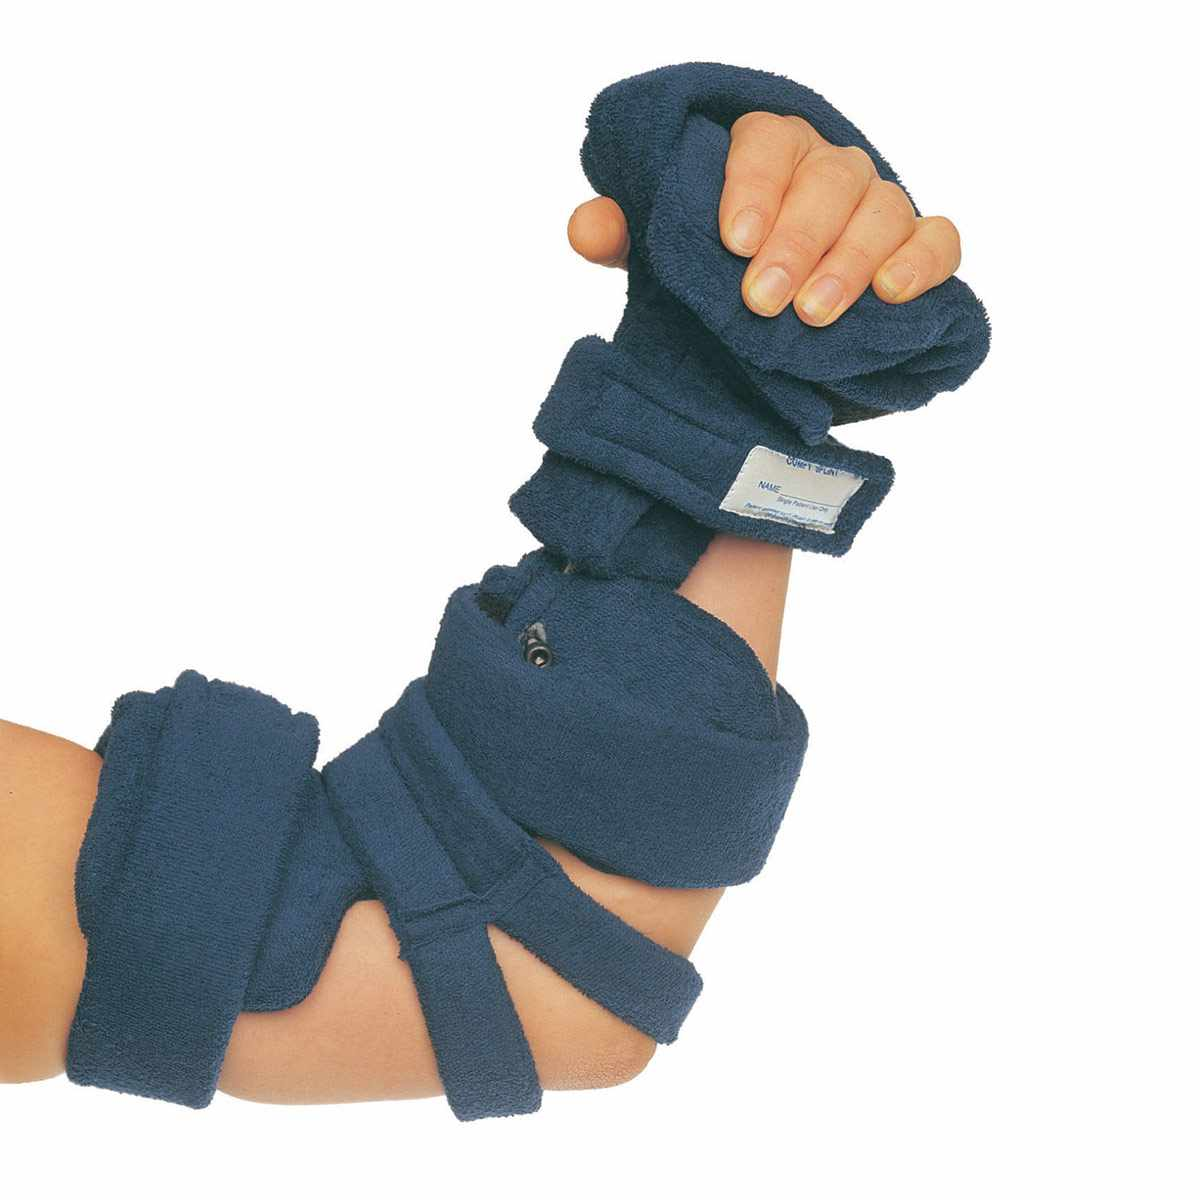 Comfy Elbow and Full Hand Orthosis